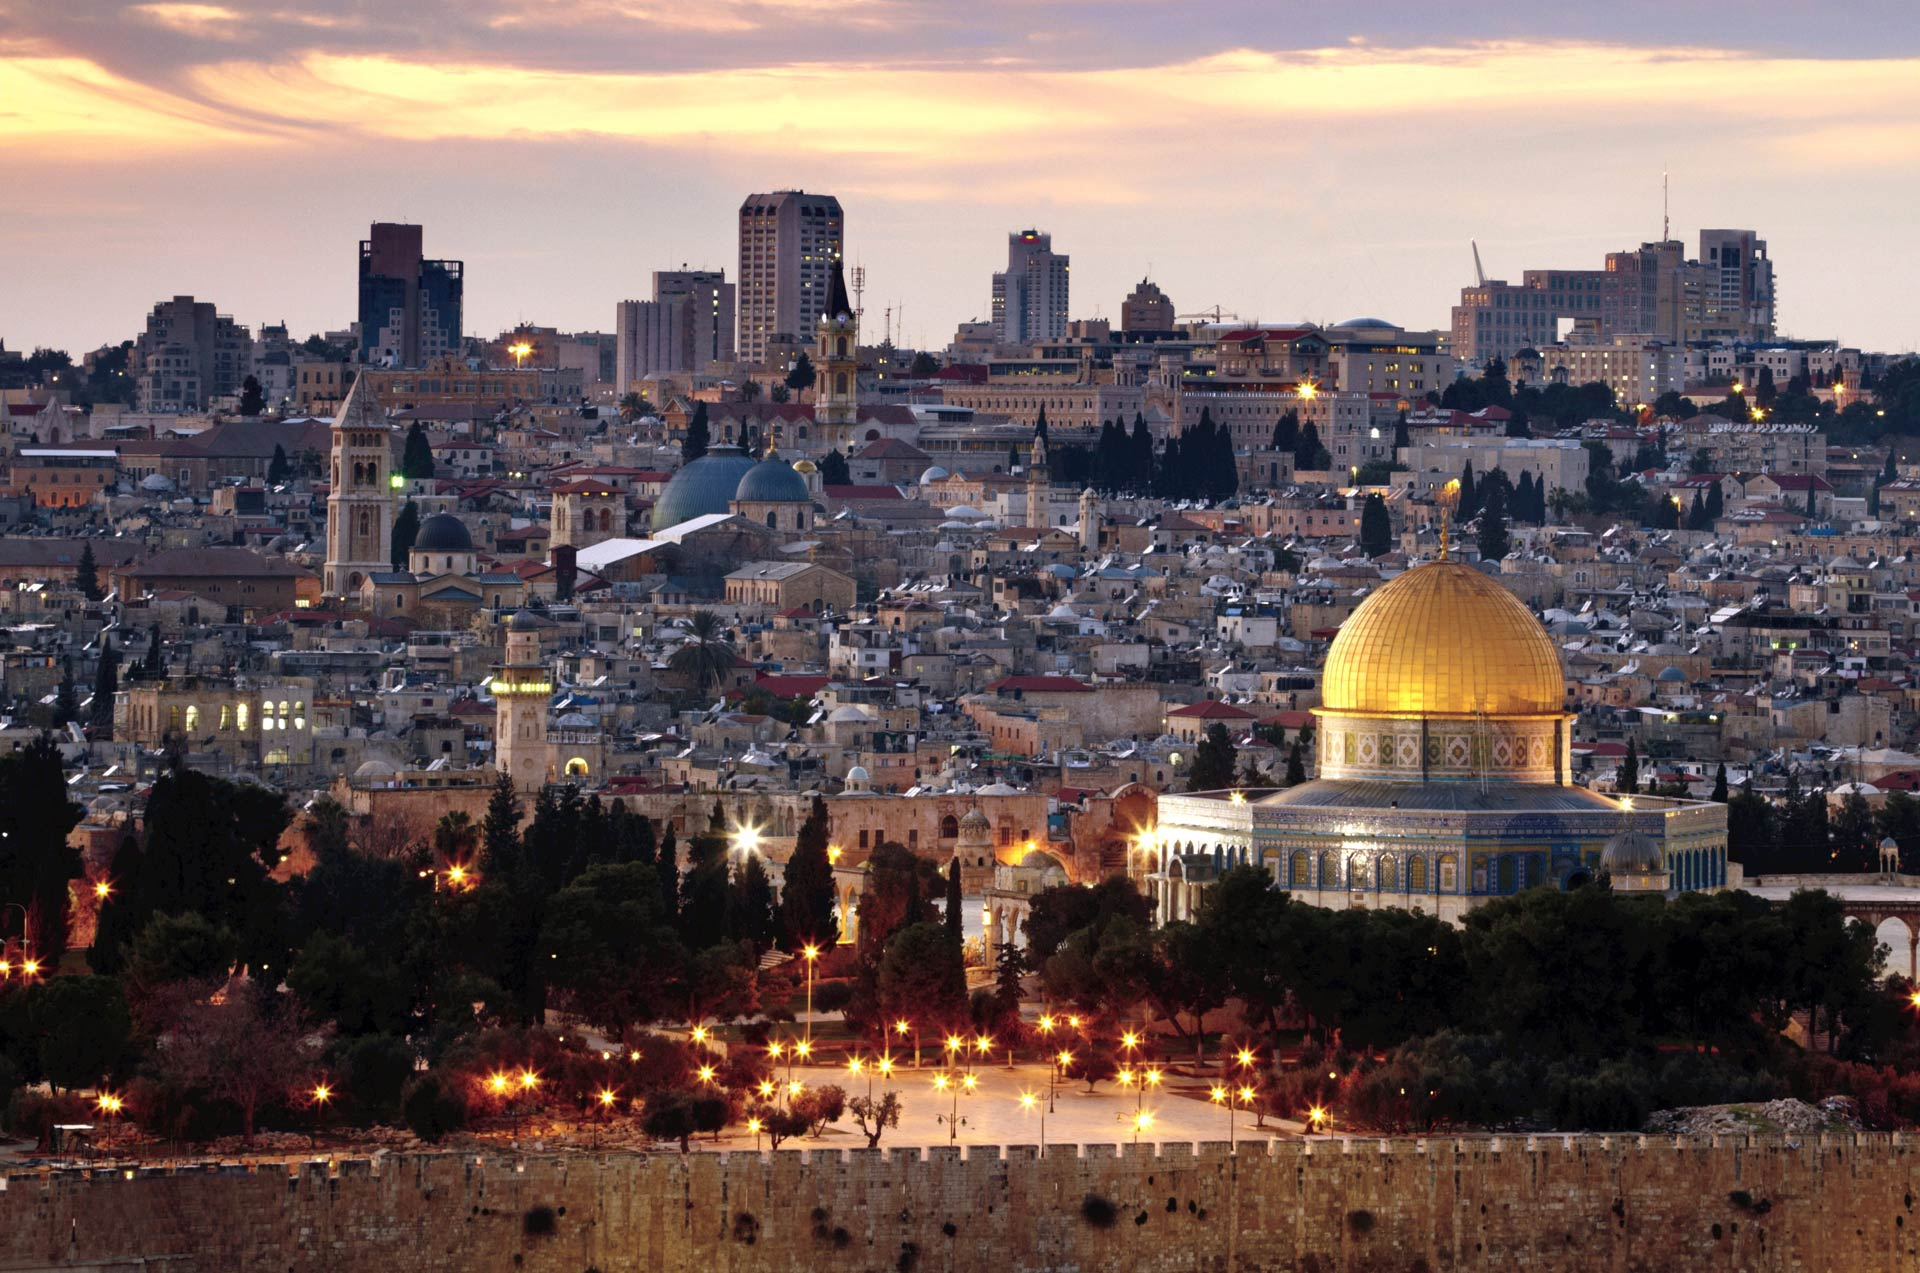 jerusalem middle eastern singles The plans include the construction of 1,000 housing units with the aim of extending pisgat zeev settlement east of occupied jerusalem  this work by middle east .